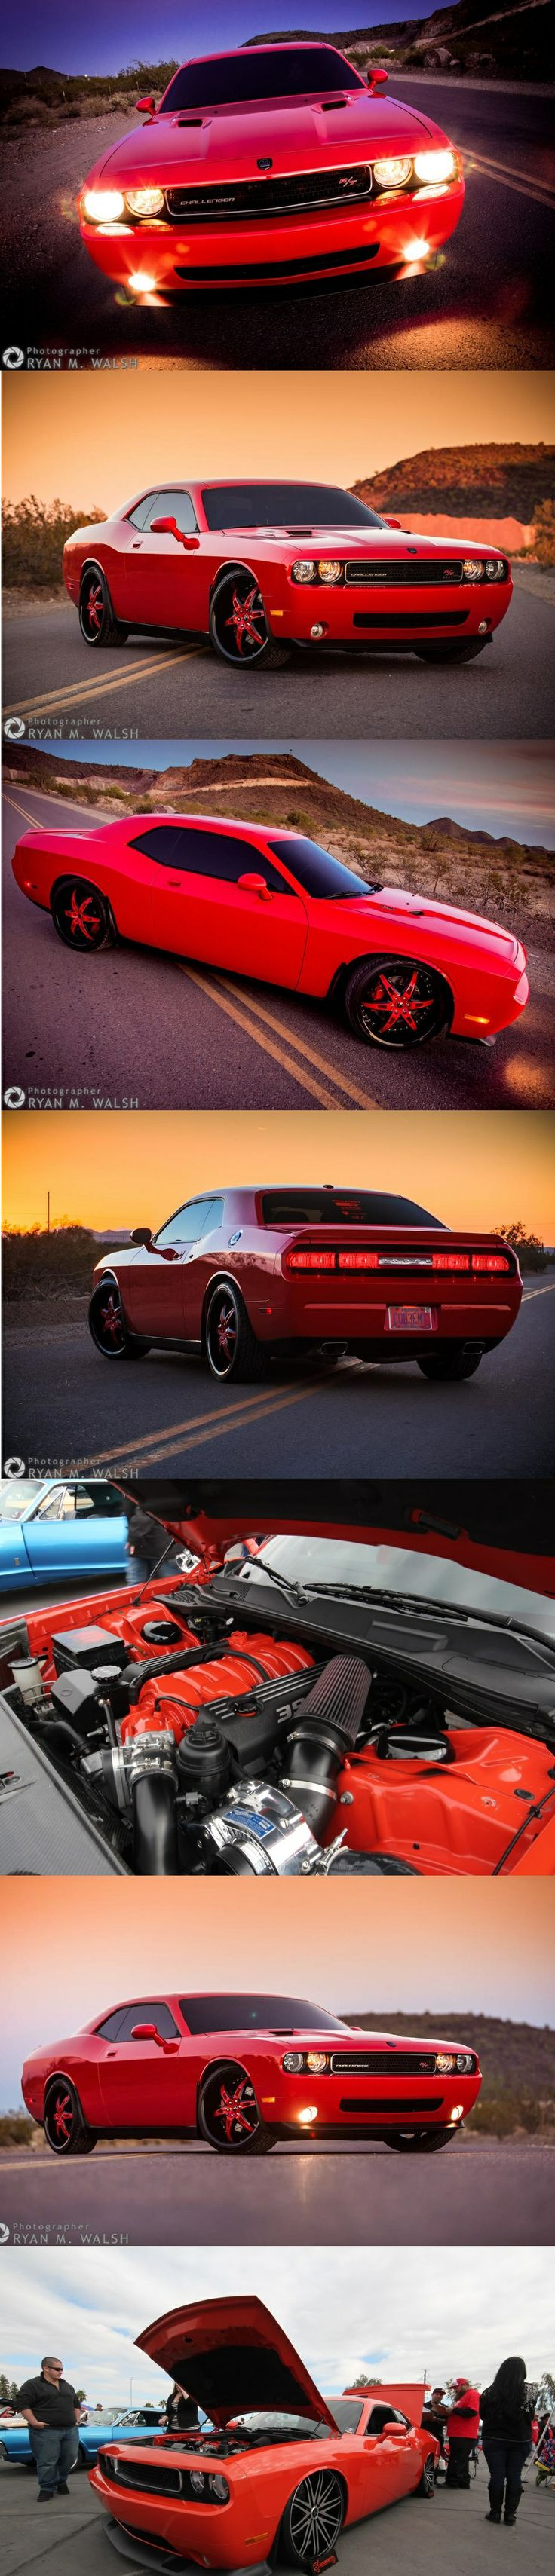 66e1915c707be9cb59a9c29f6f4ba92a jpg 736 3418 american dream cars hot rods cars muscle new dodge challenger pinterest